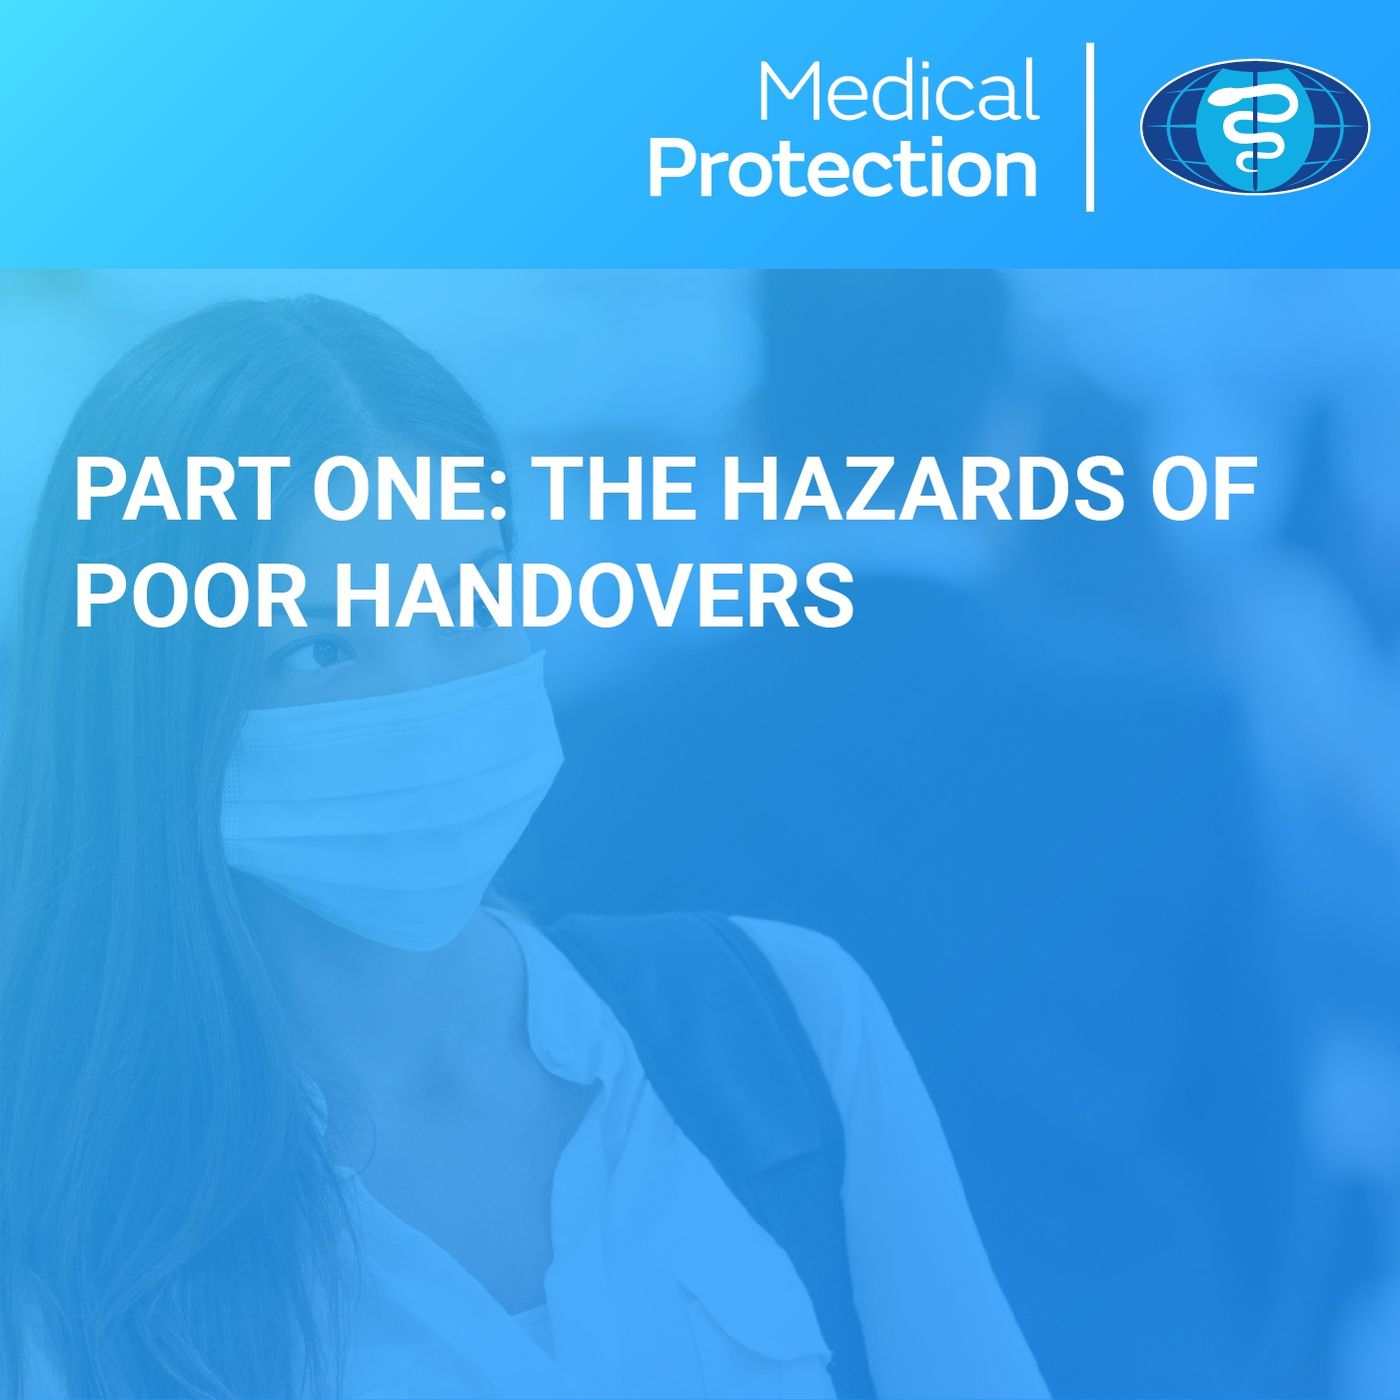 Handovers part 1: The hazards of poor handovers